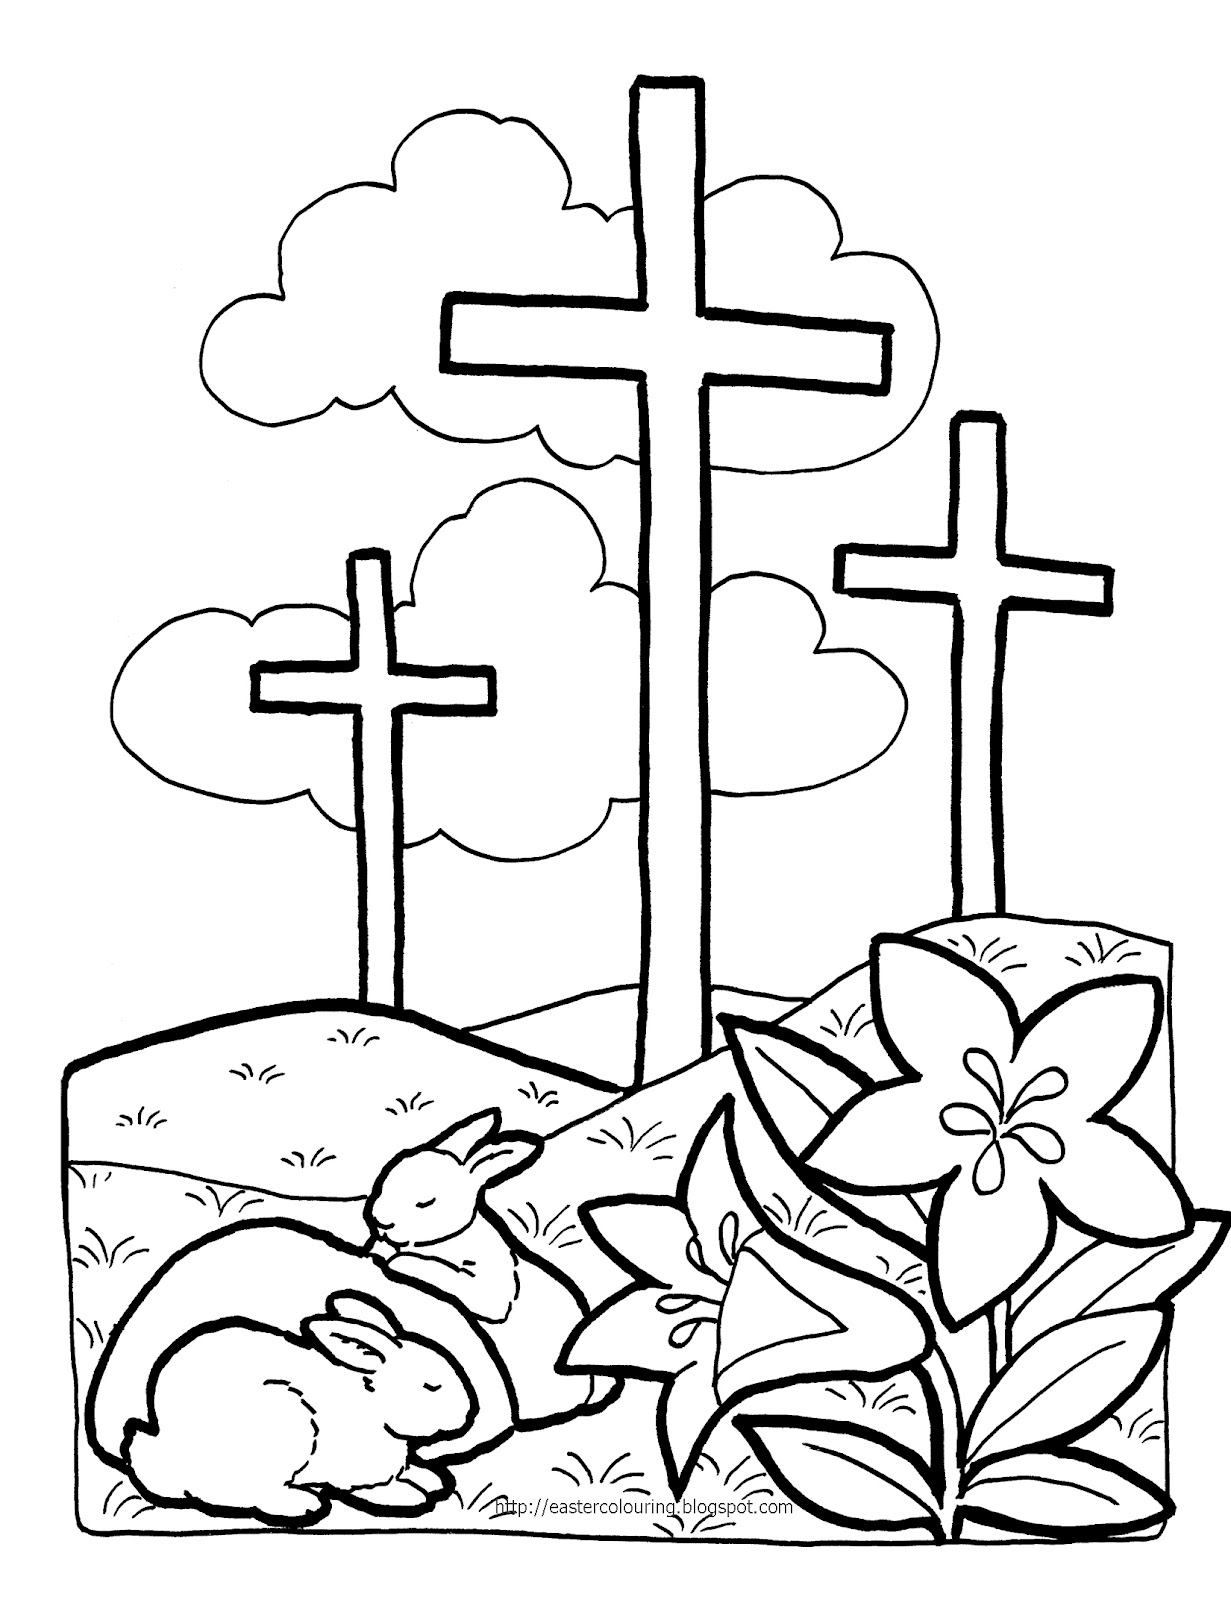 4 Images of Religious Easter Printables